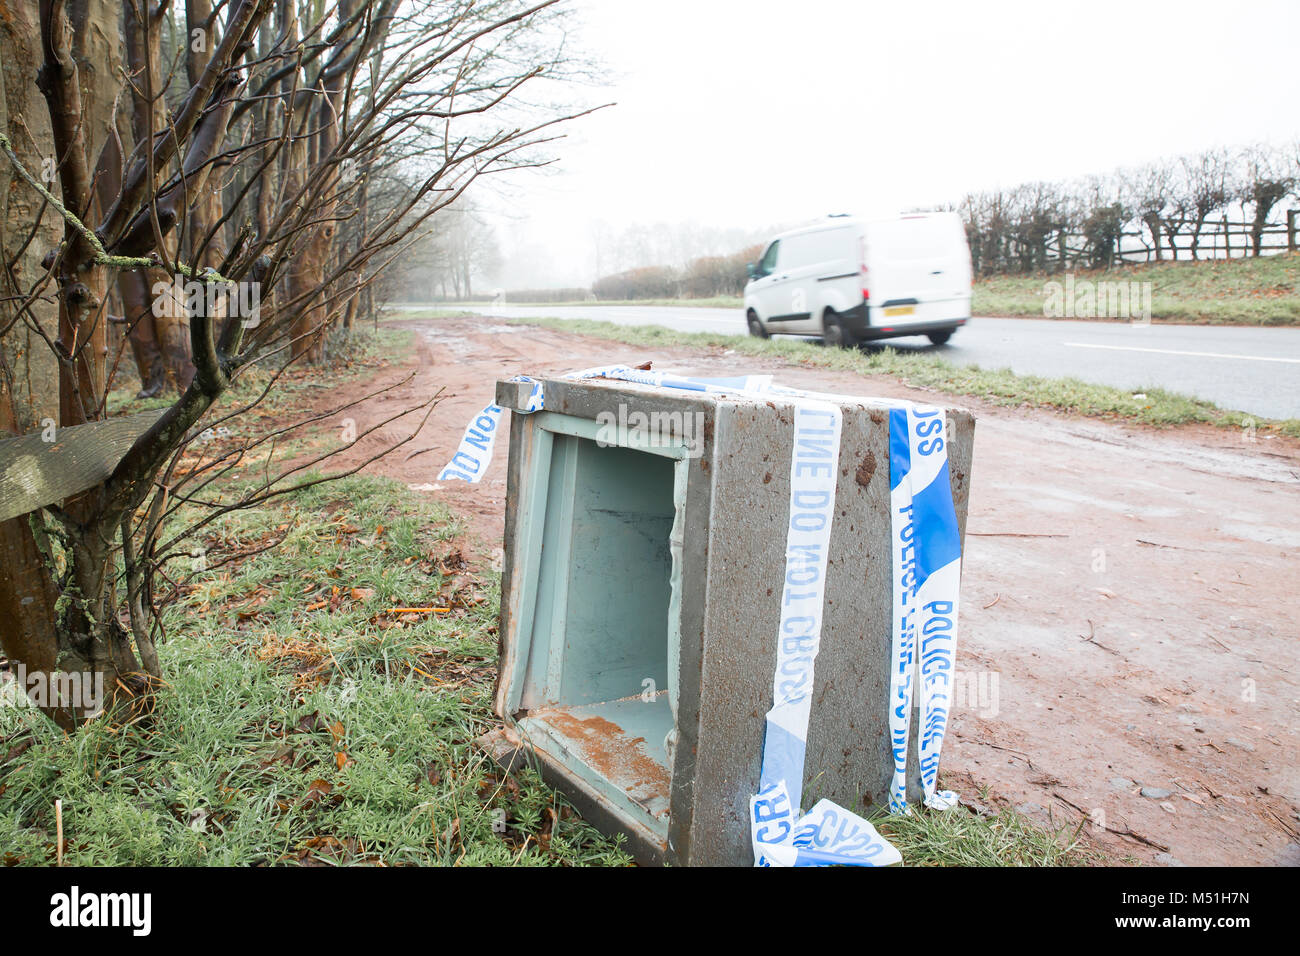 Vandalized safe damaged by brute force in professional robbery, dumped by thieves in country road lay-by. Police - Stock Image